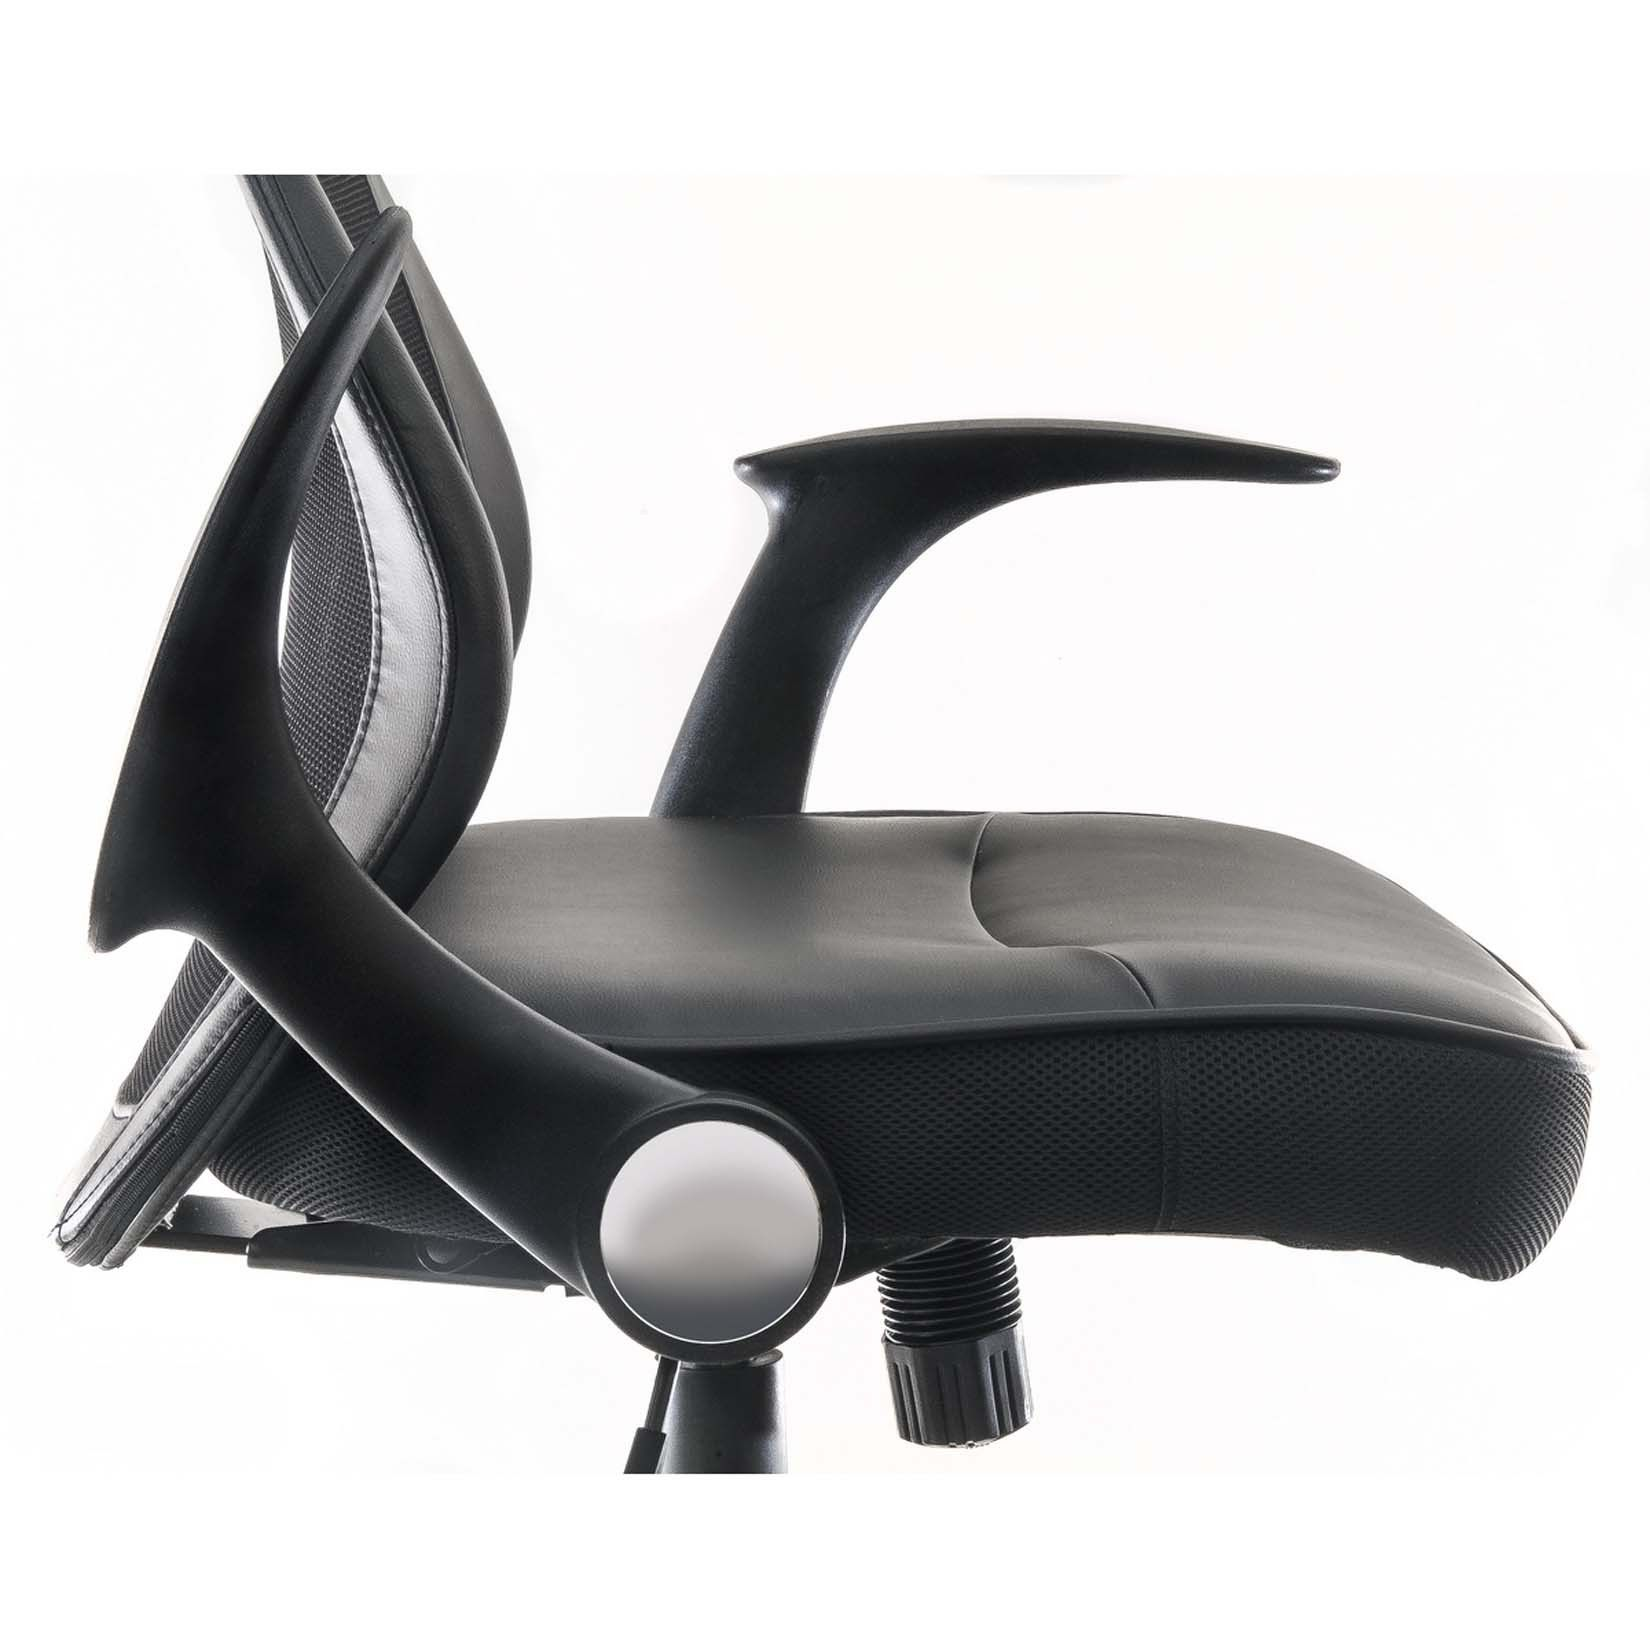 curve_mesh_arm_shot5.jpg (1650×1650) Massage chair